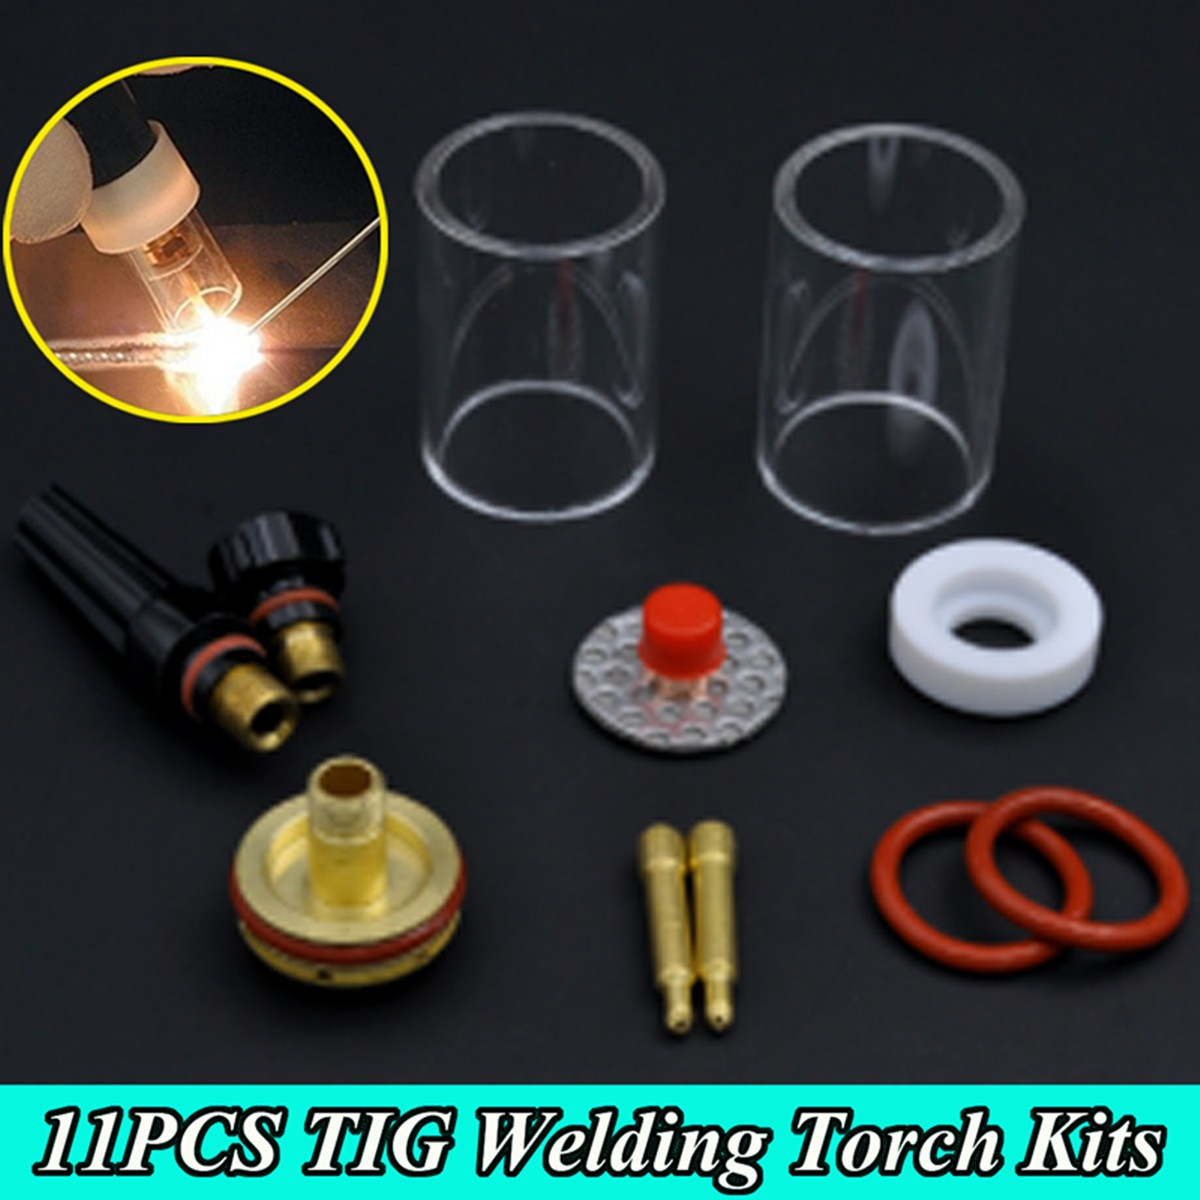 New 11Pcs TIG Welding Torch Stubby Gas Lens Glass Cup Kit For WP17/18/26 2.4mm 3/32 wp 17f sr 17f tig welding torch complete 17feet 5meter soldering iron flexible